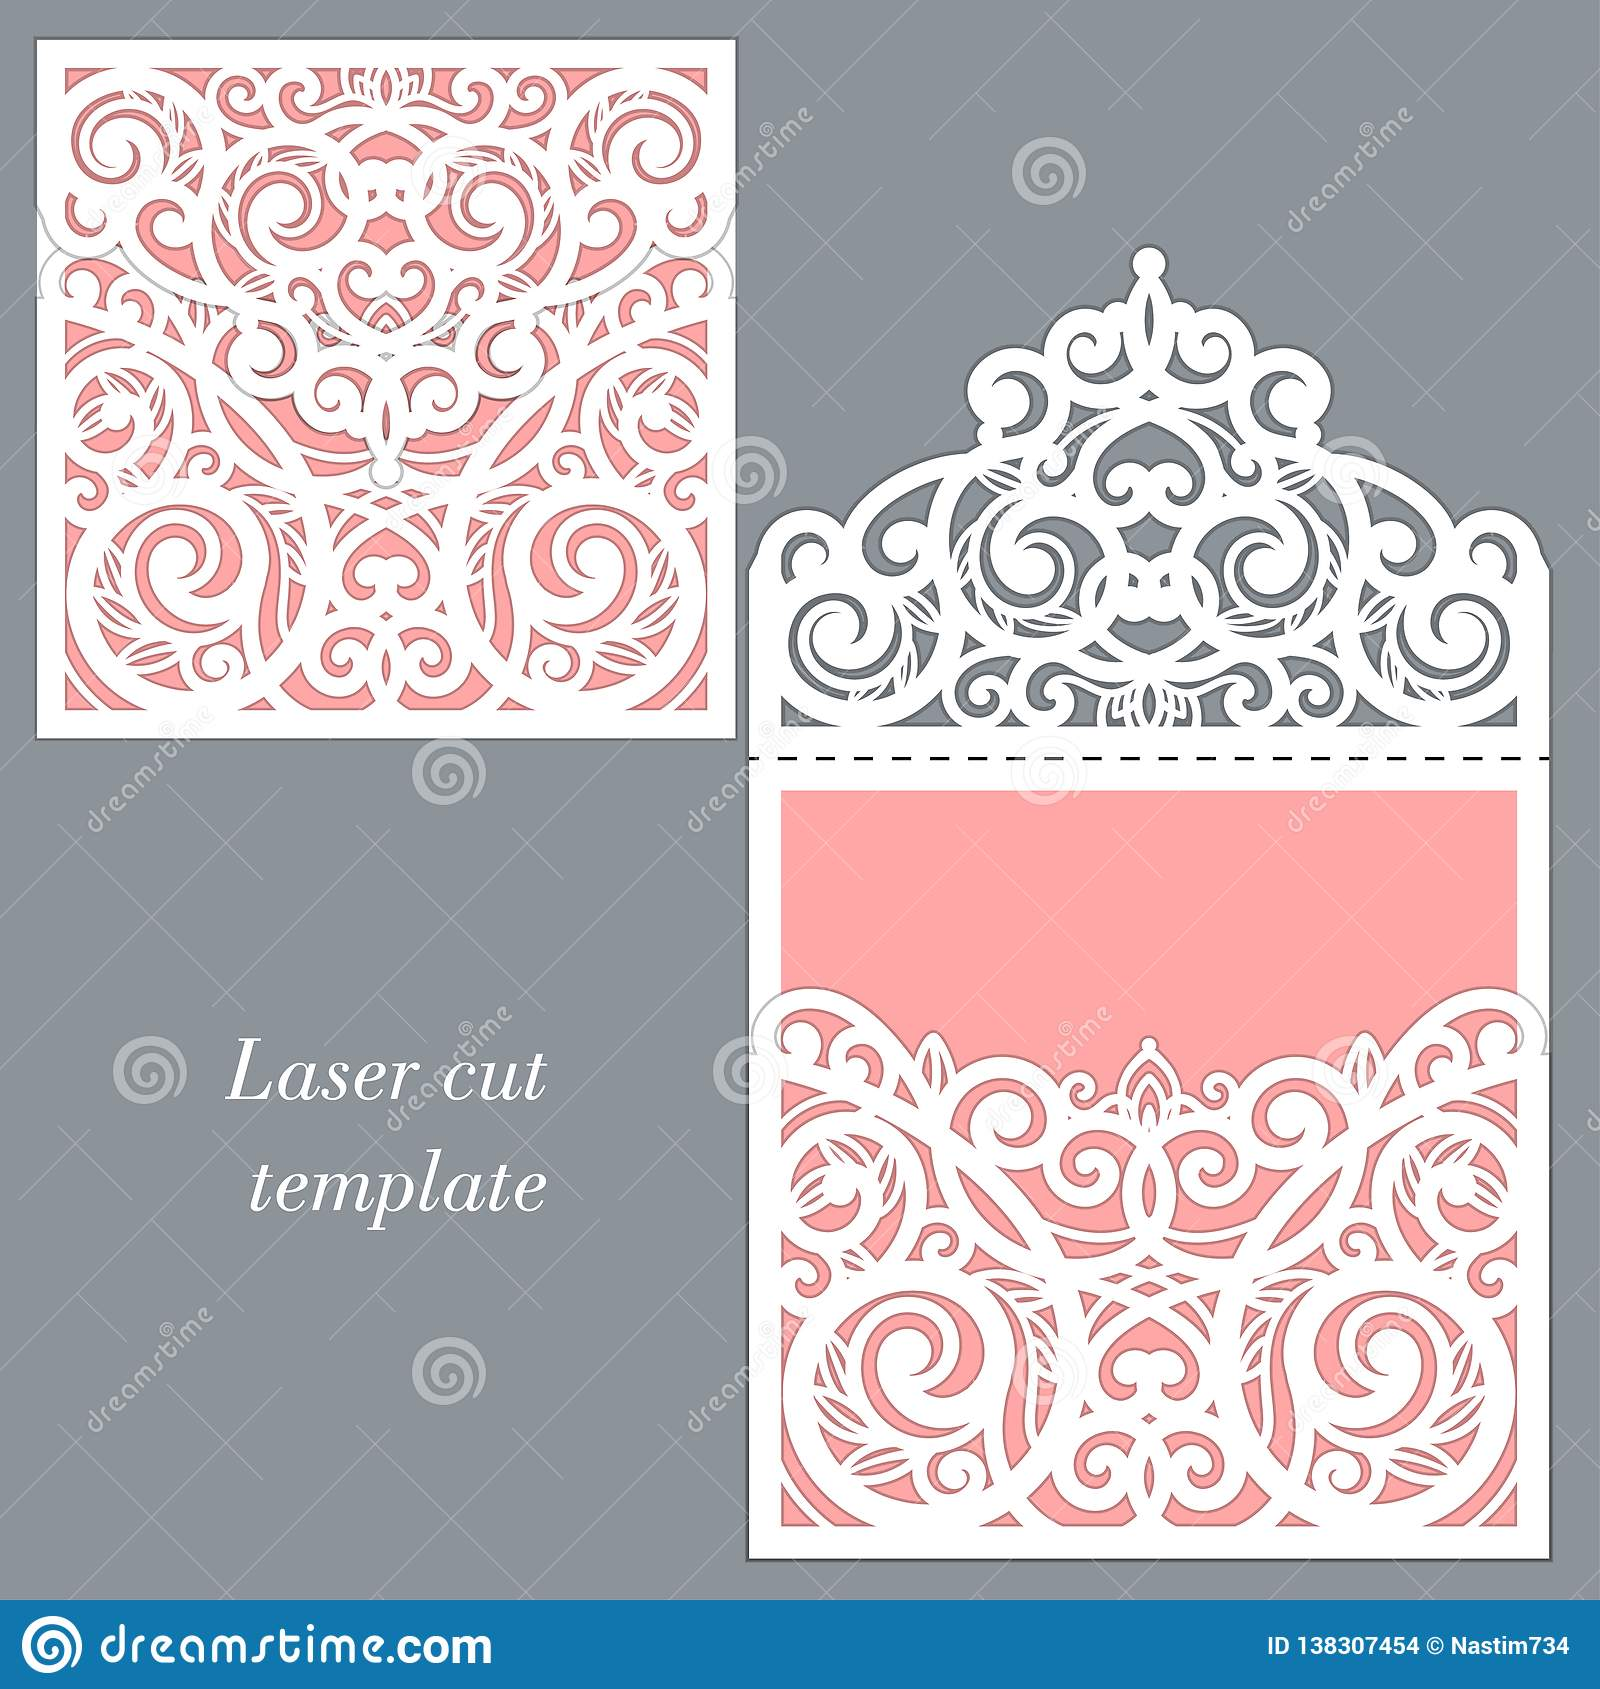 Laser cutting template. Envelope for wedding invitation. Vector